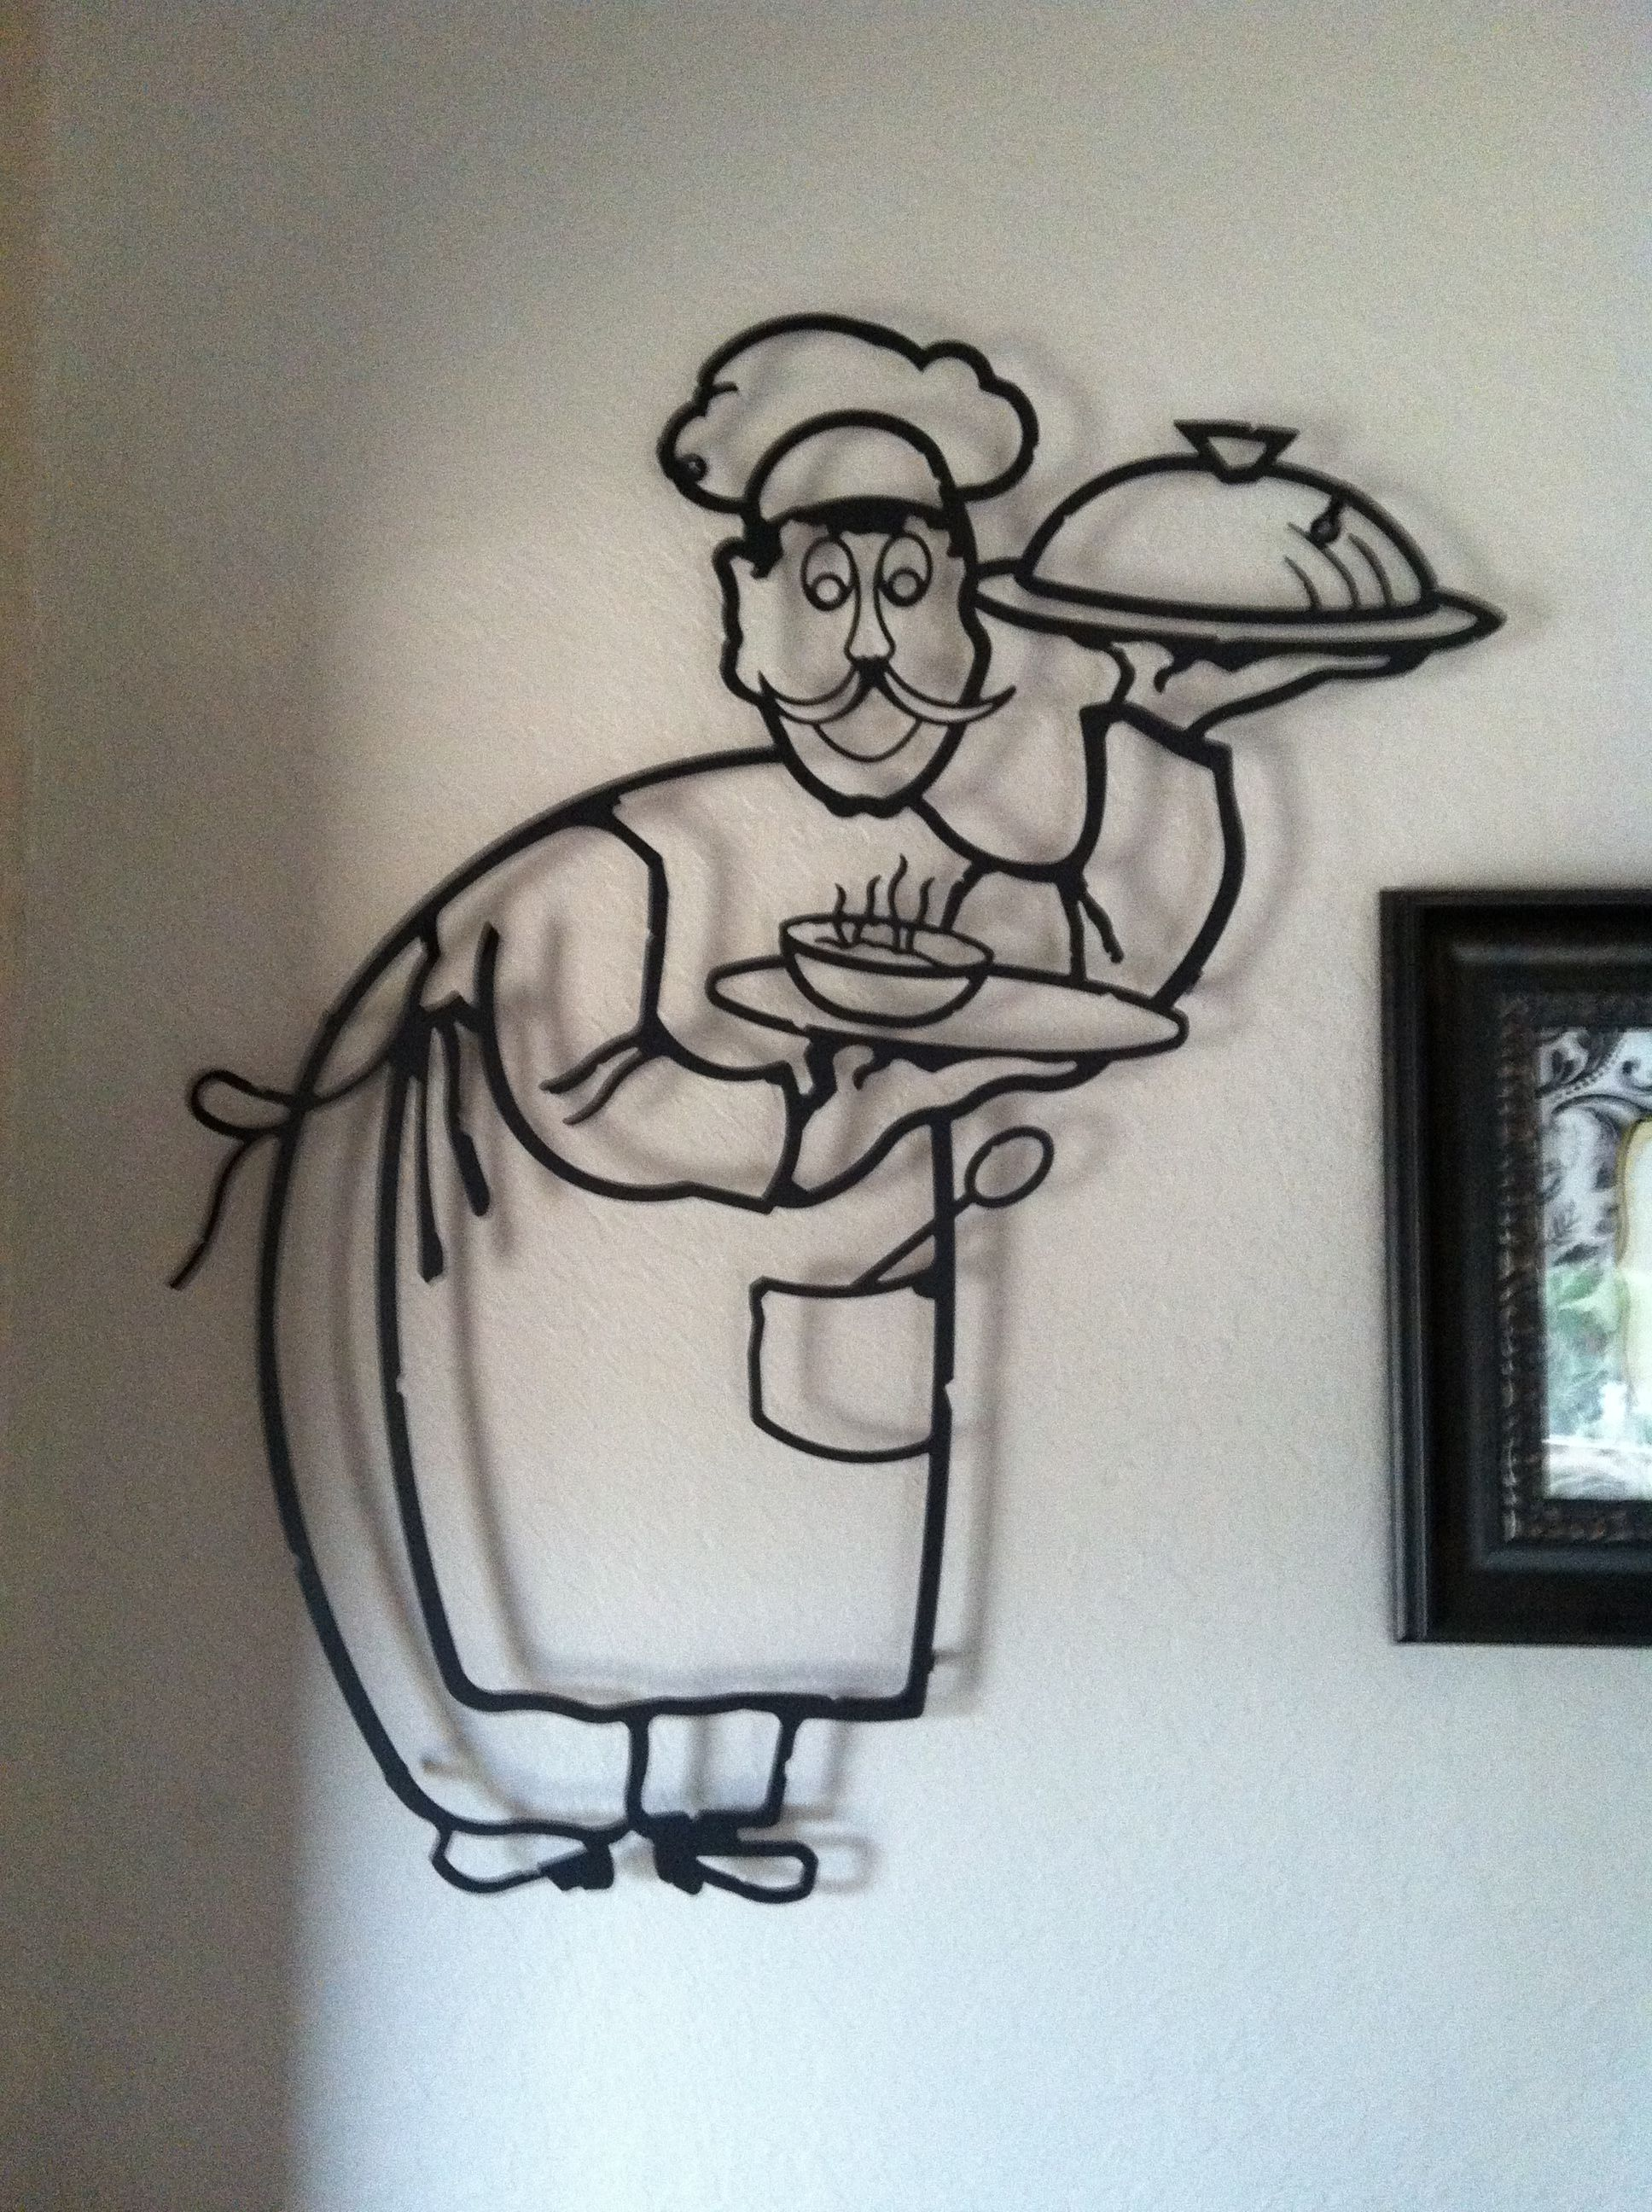 Metal chef wall decor Great piece in the kitchen